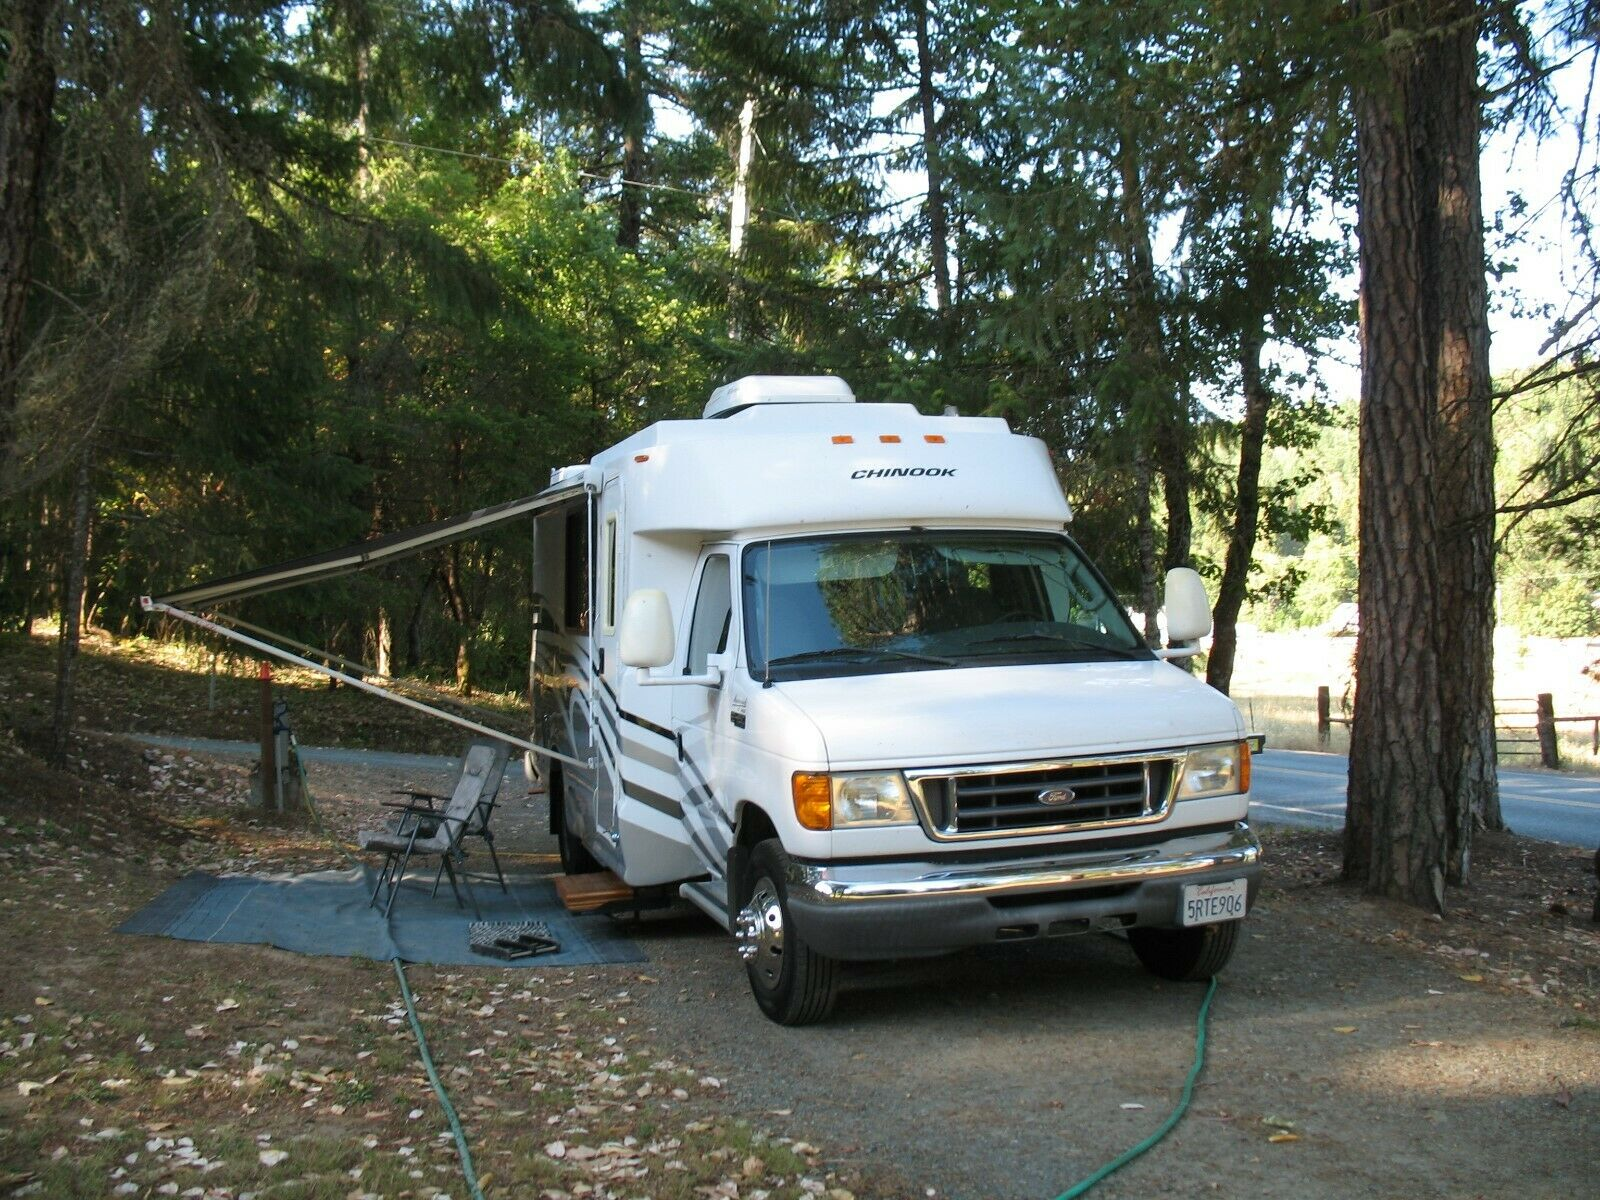 excellent shape 2005 Ford Chinook Motorhome 21′ camper